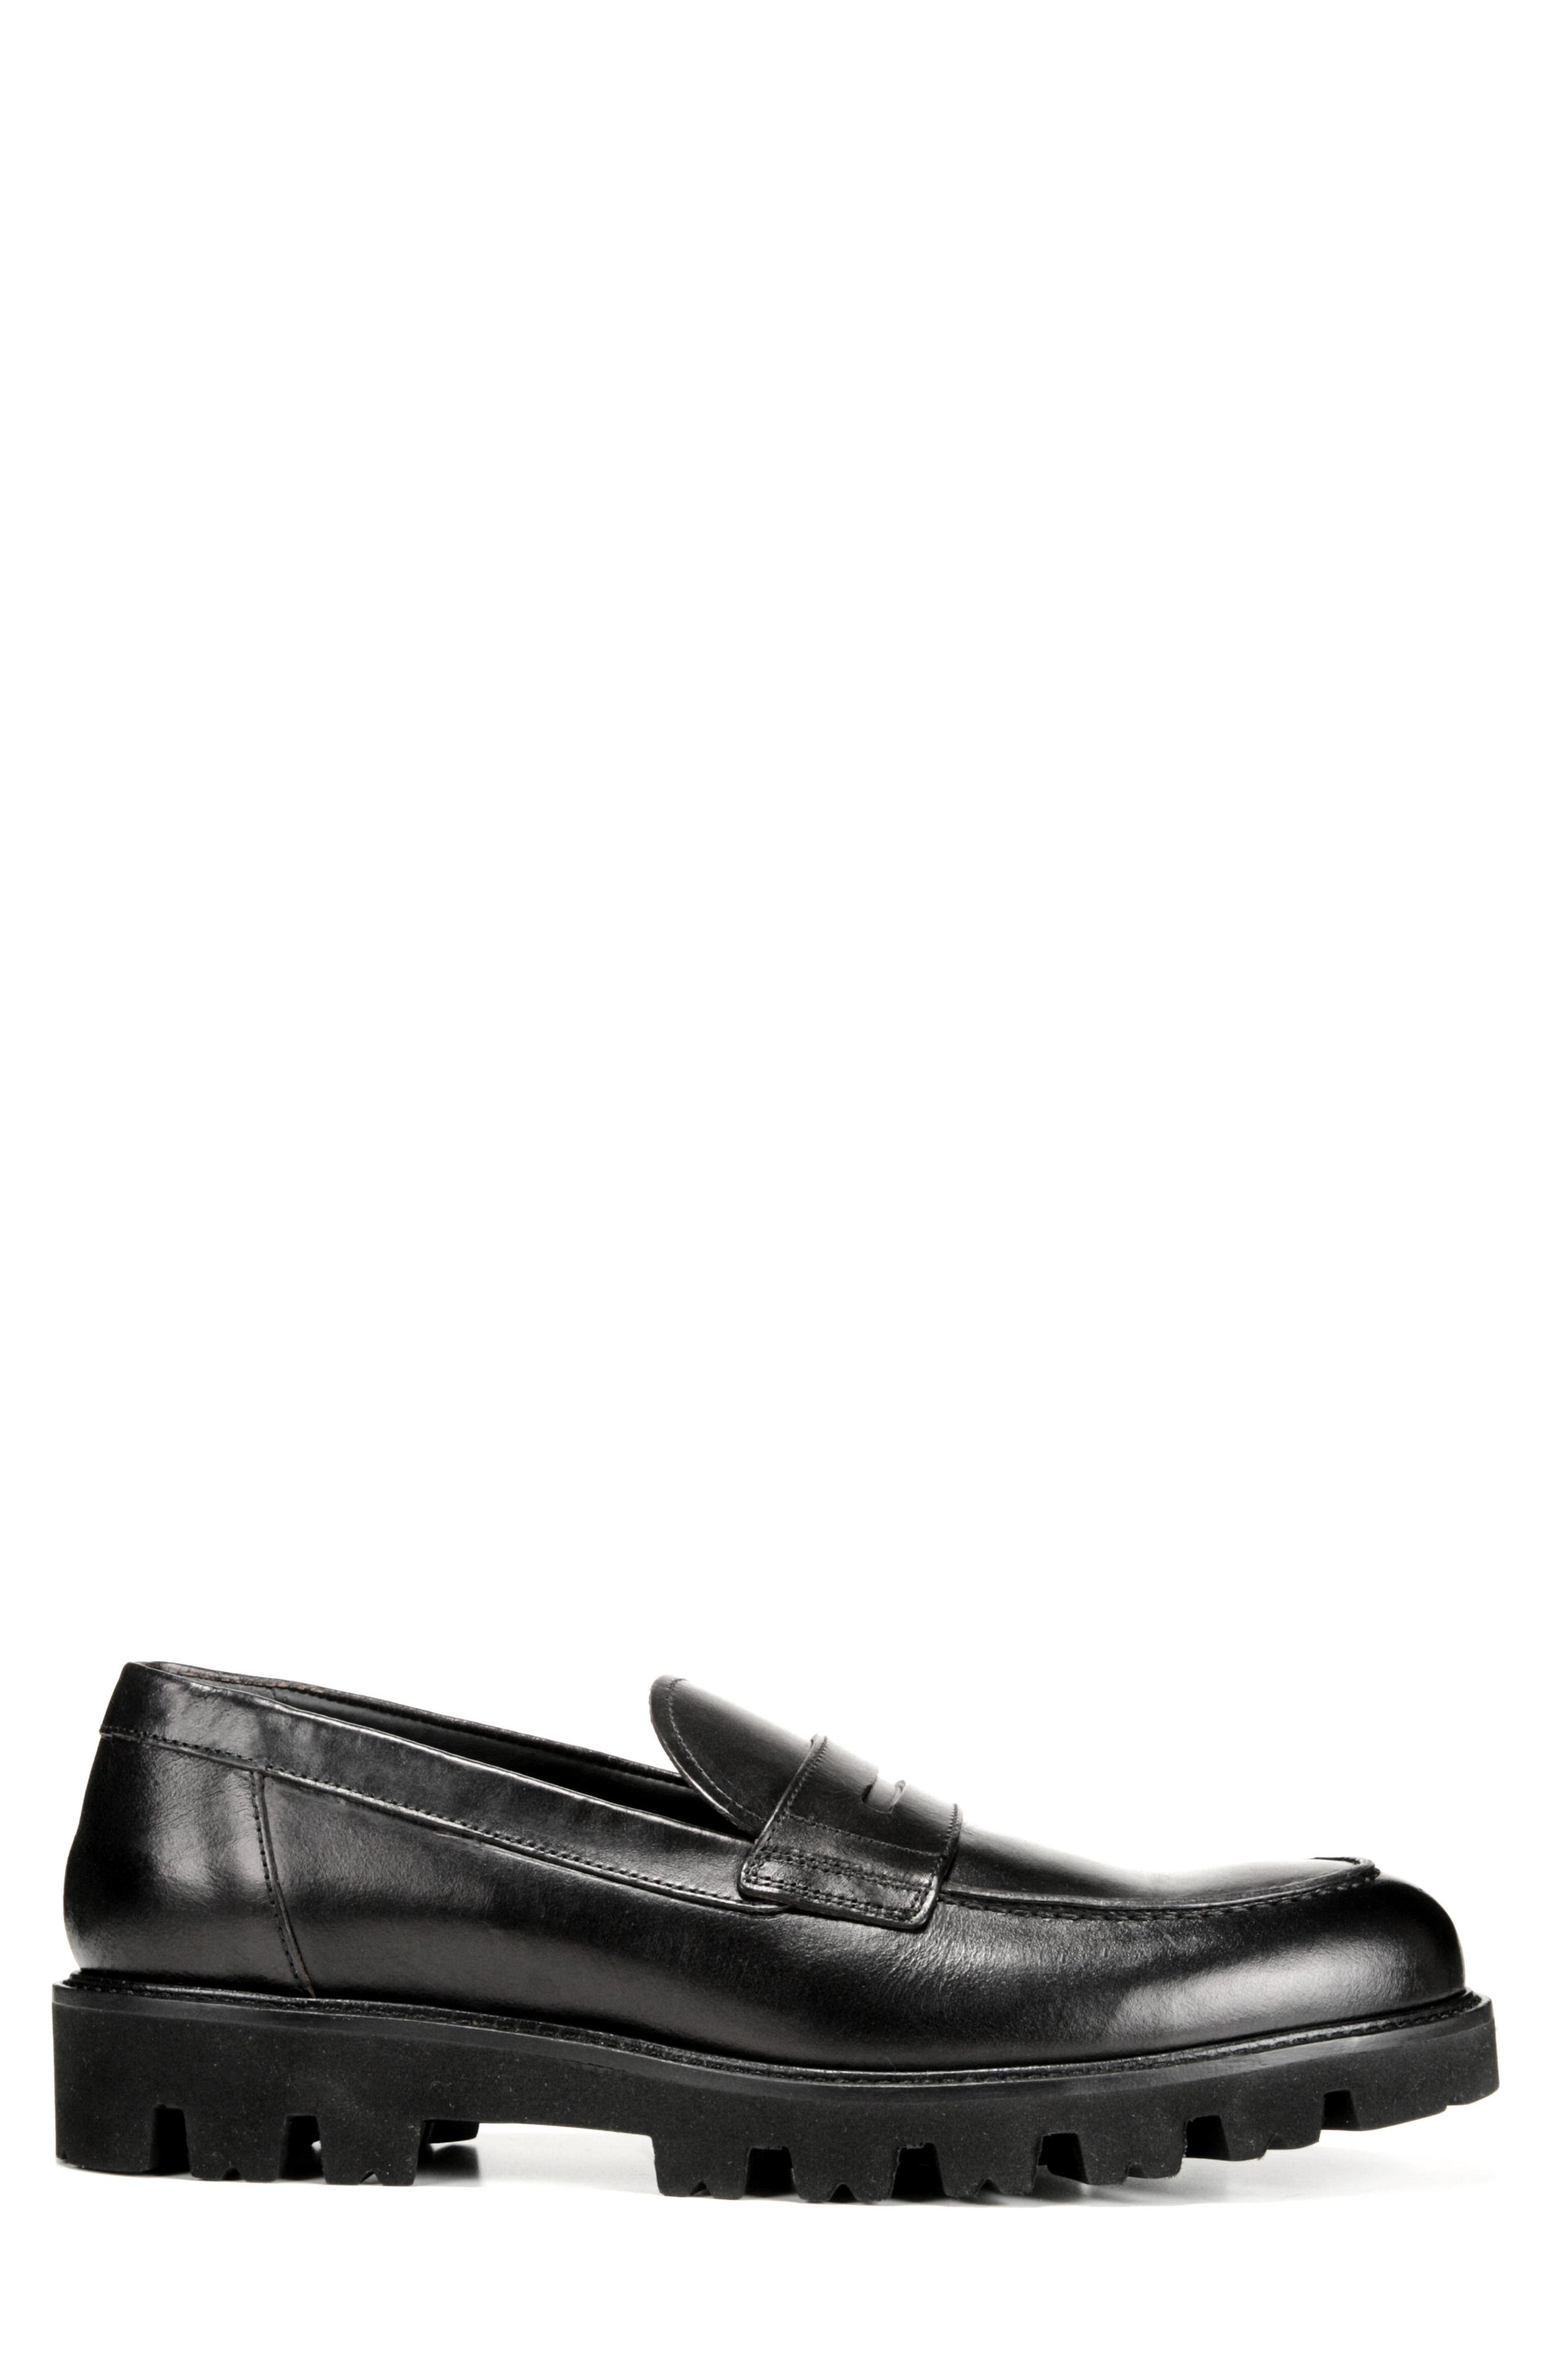 Comrade Loafer,                             Alternate thumbnail 3, color,                             BLACK